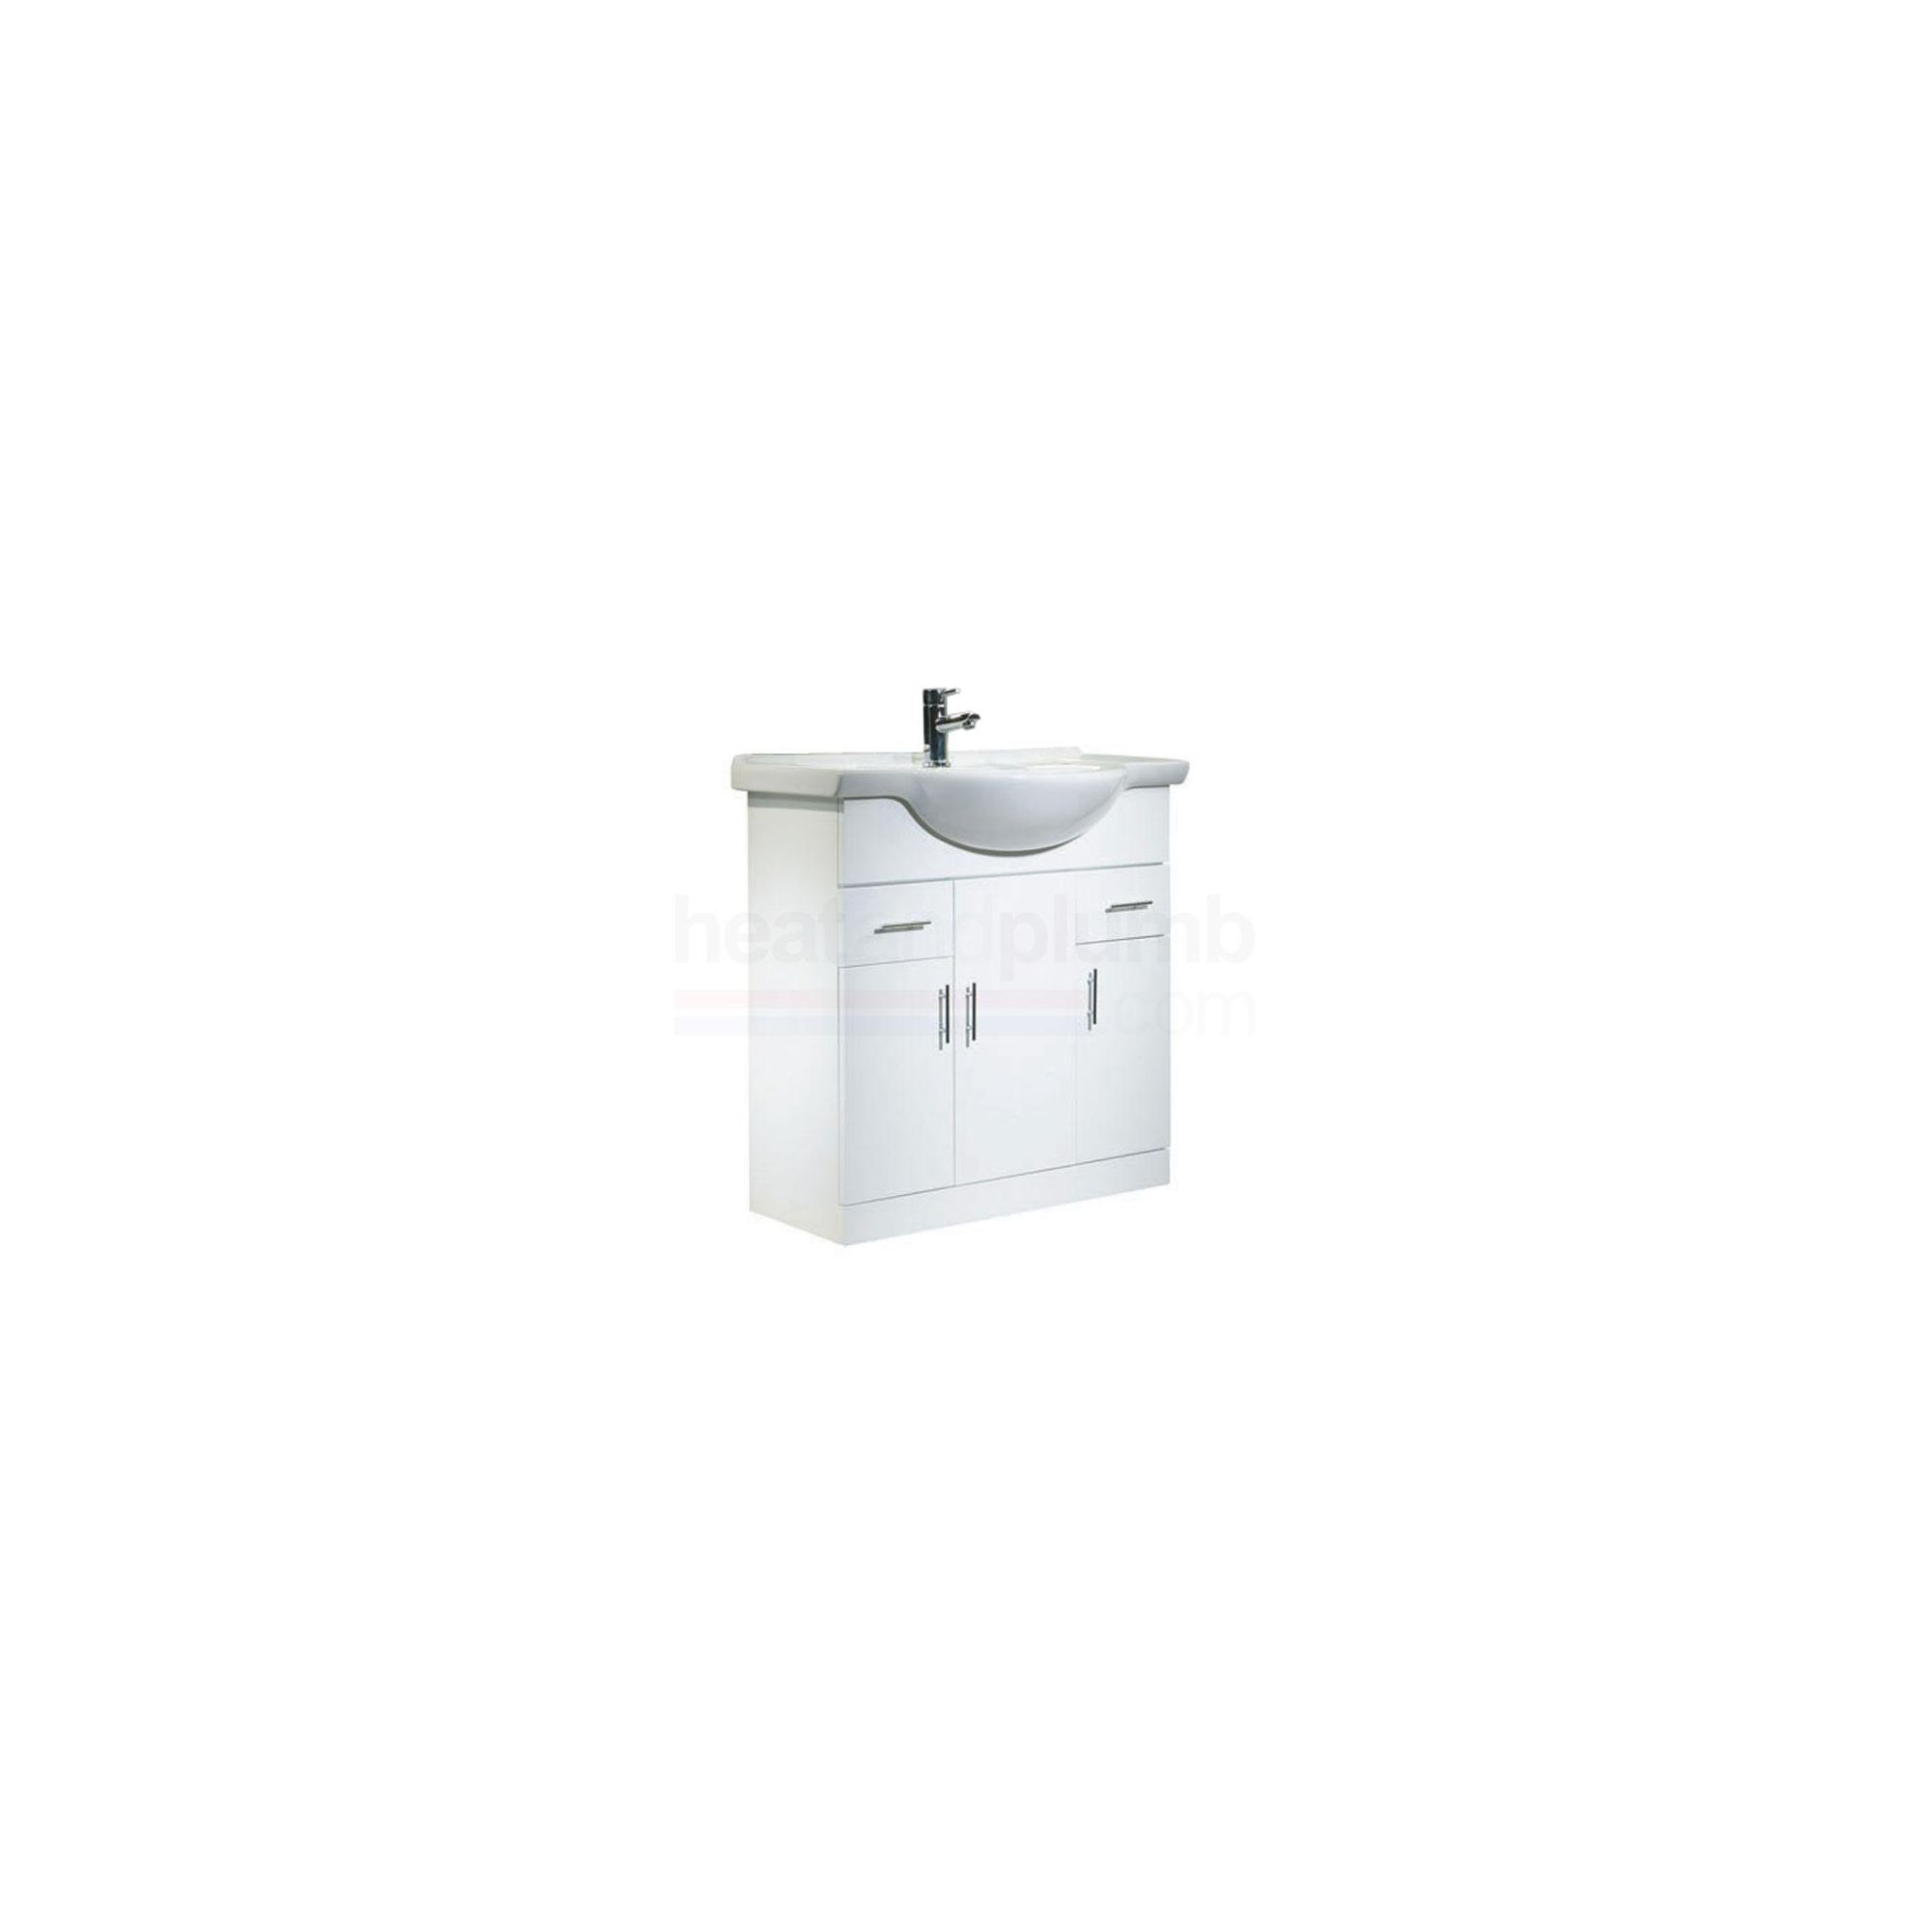 Tavistock Evolution White Floor Standing Cabinet and Basin - 1 Tap Hole - 850mm Wide